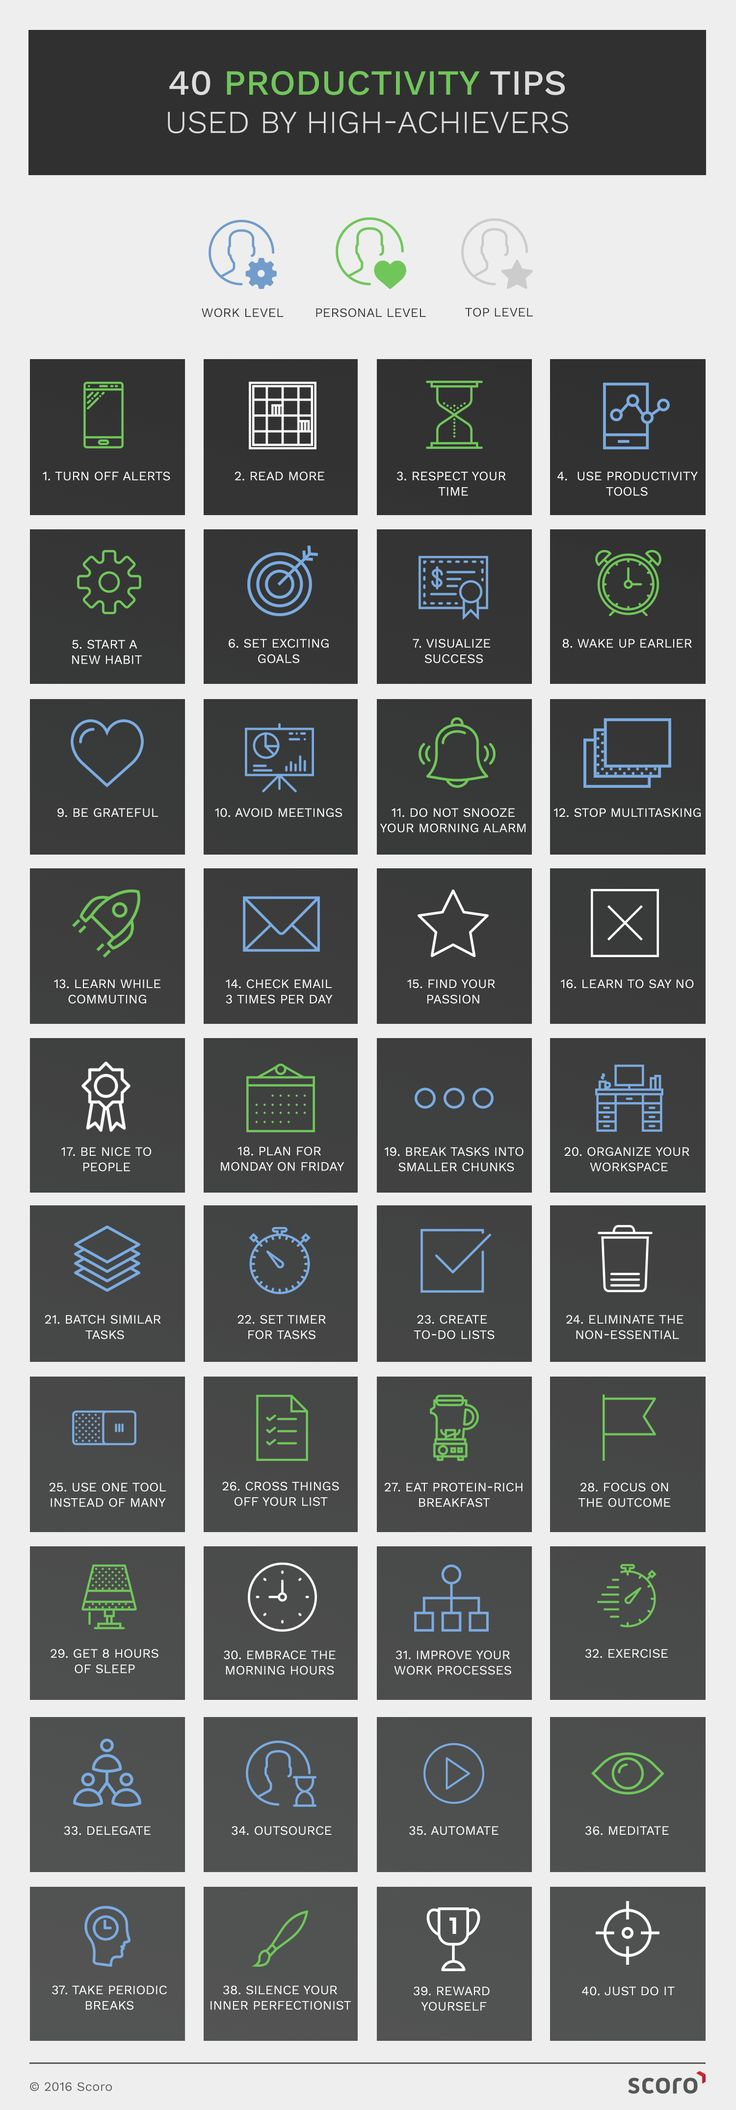 40 Productivity Tips Used by High-Achievers [Infographic]